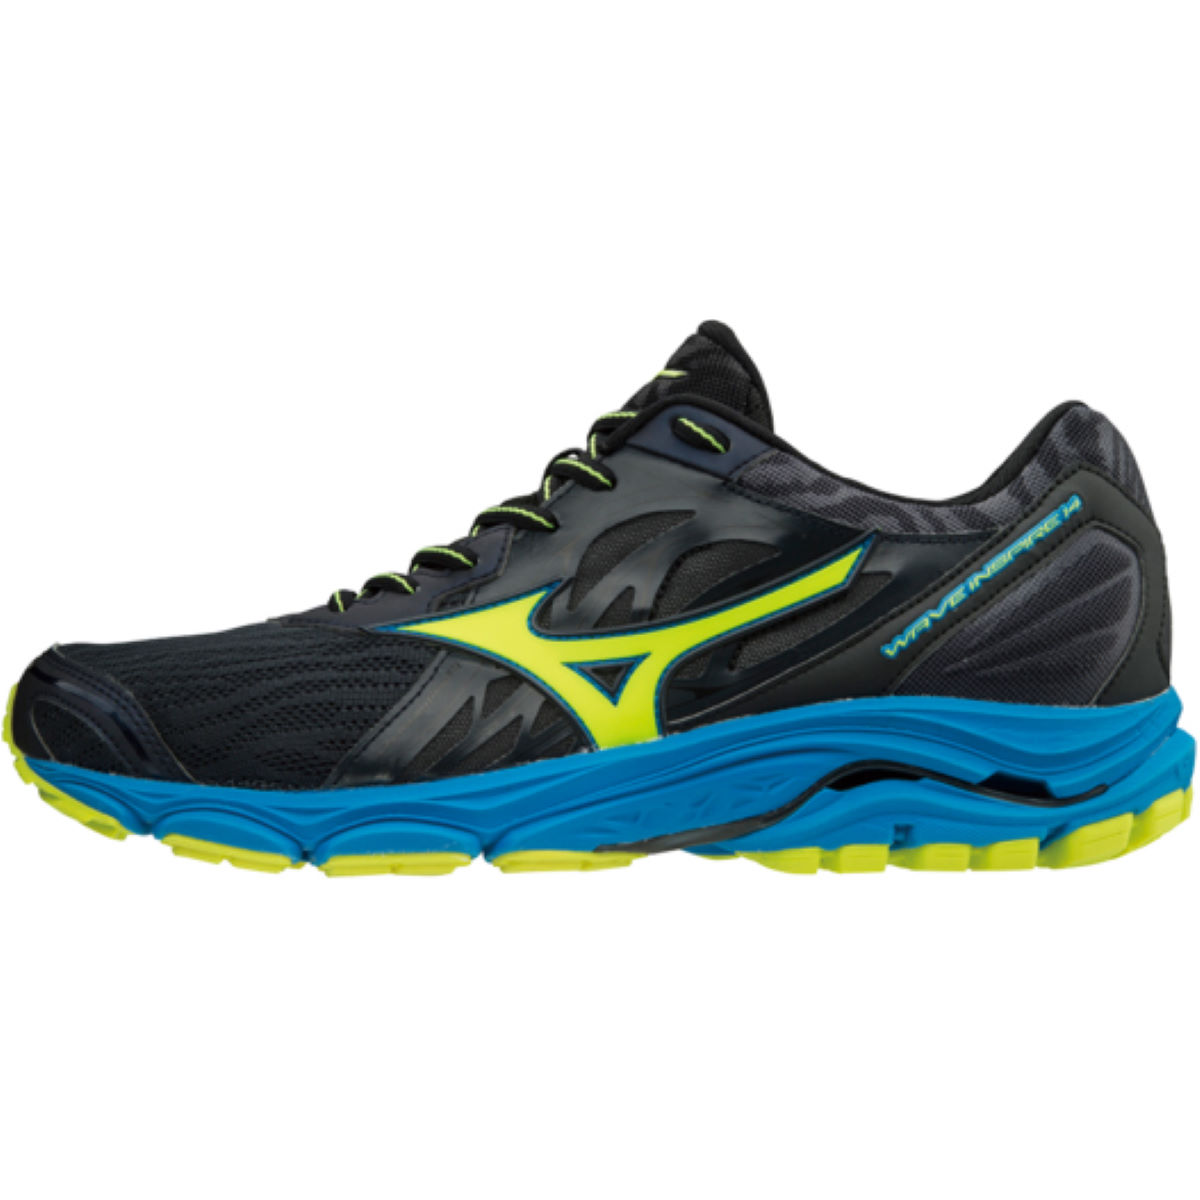 Chaussures Mizuno Wave Inspire 14 - UK 11 Ombre Blue / Safety